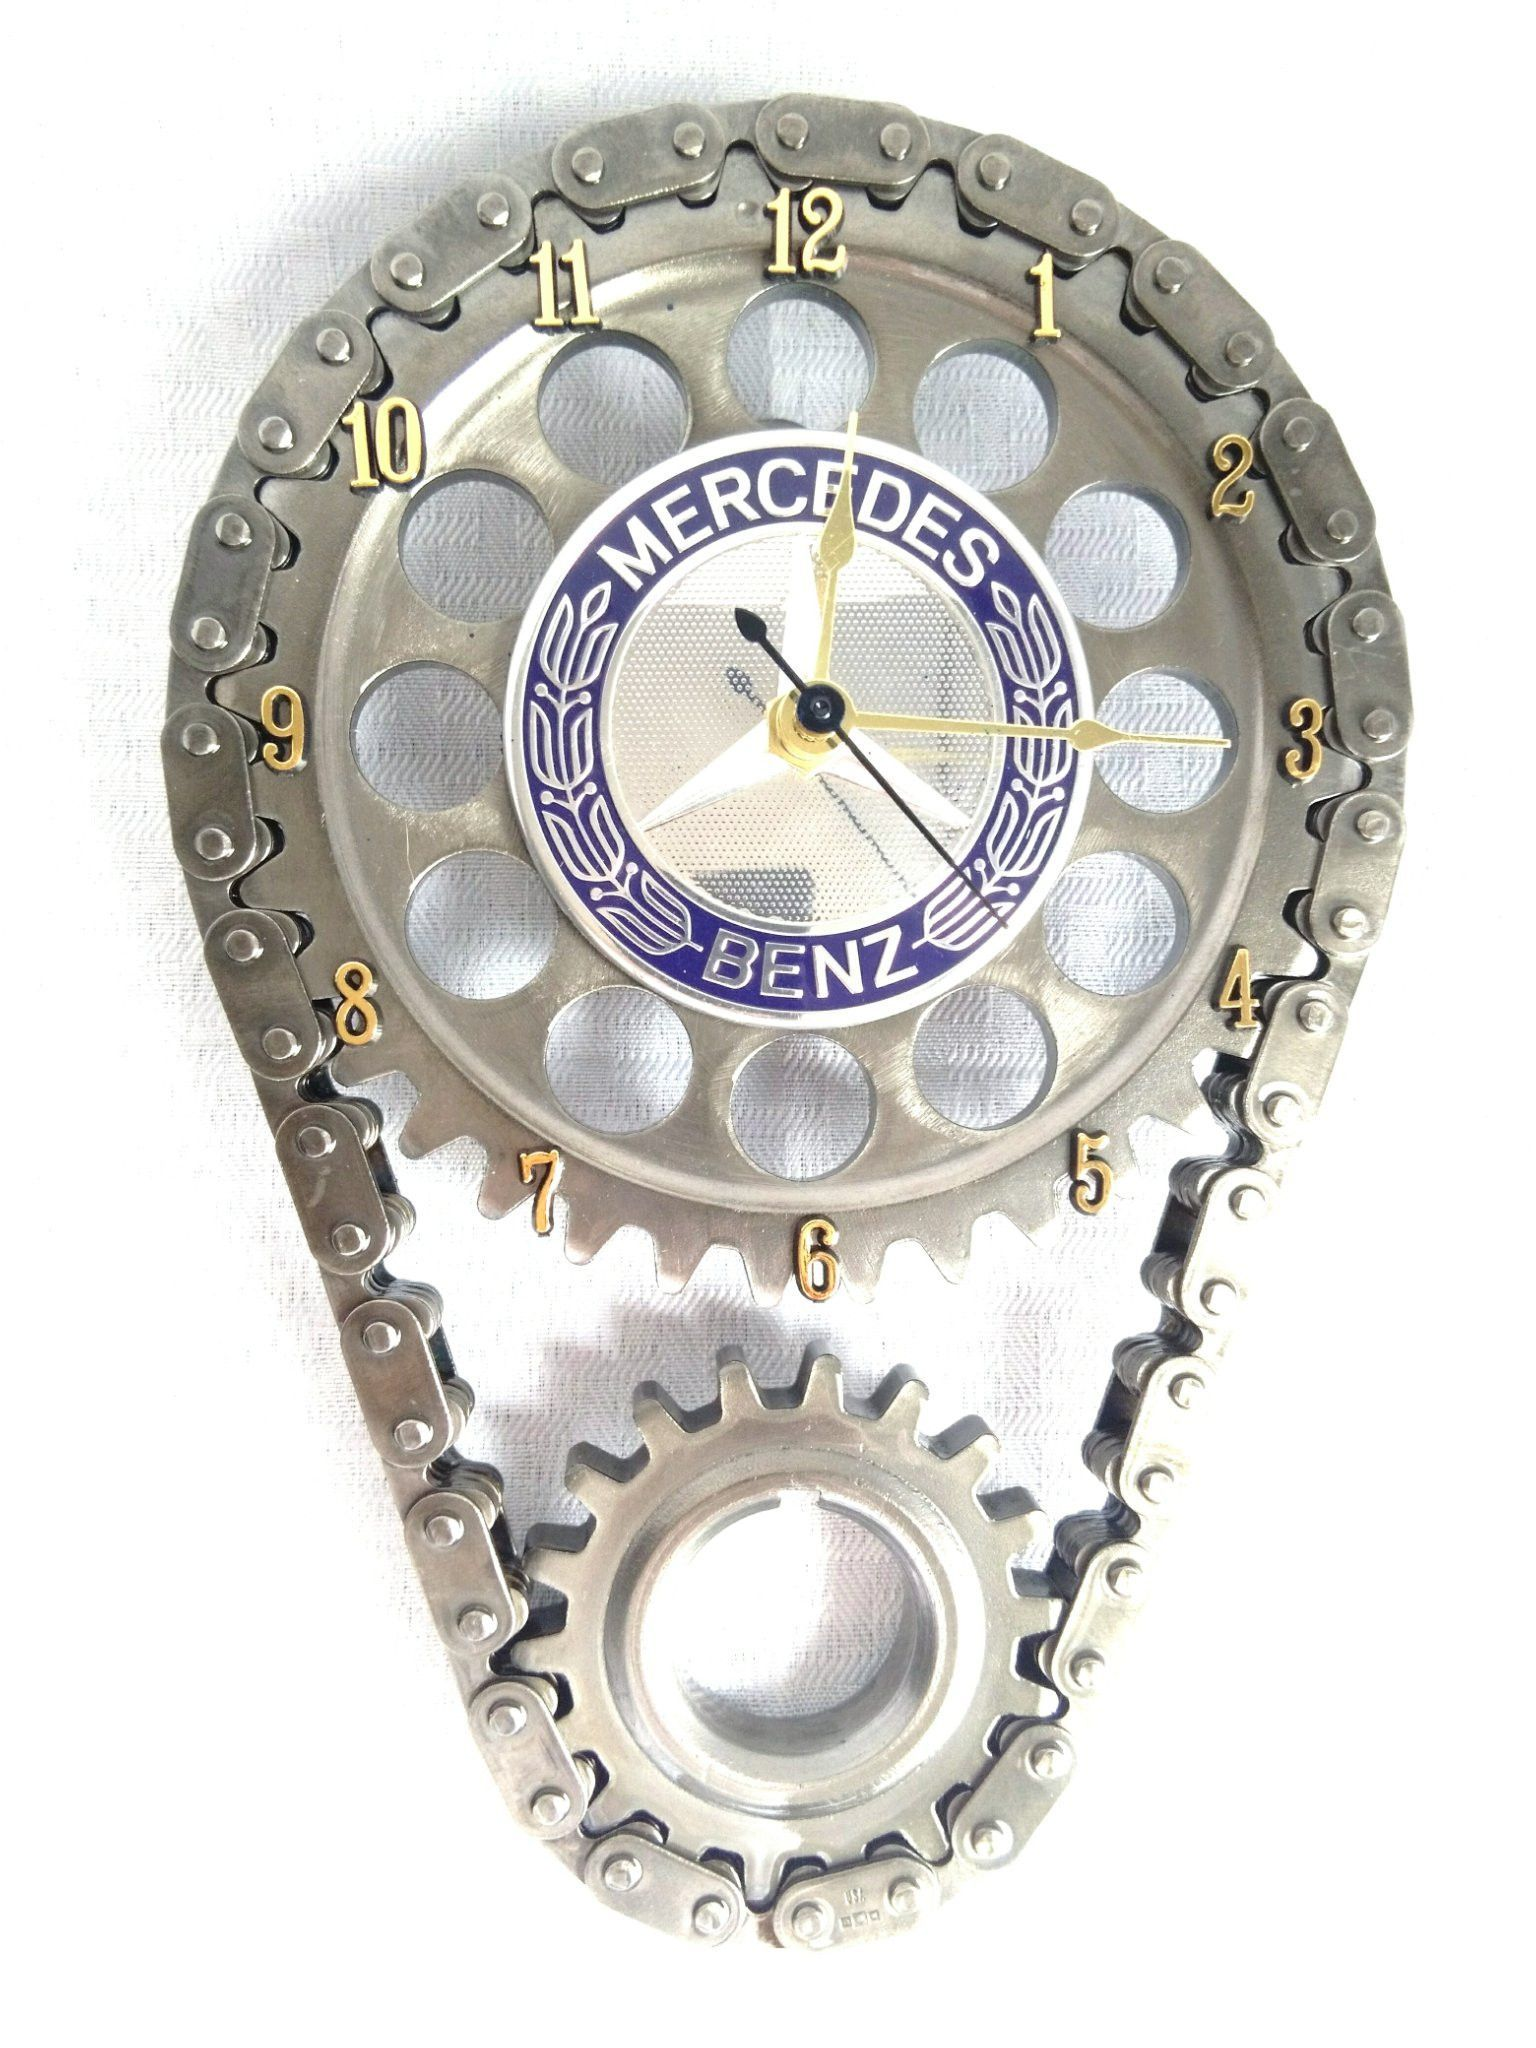 Mercedes benz engine timing gear and chain wall clock mercedes mercedes benz engine timing gear and chain wall clock amipublicfo Choice Image